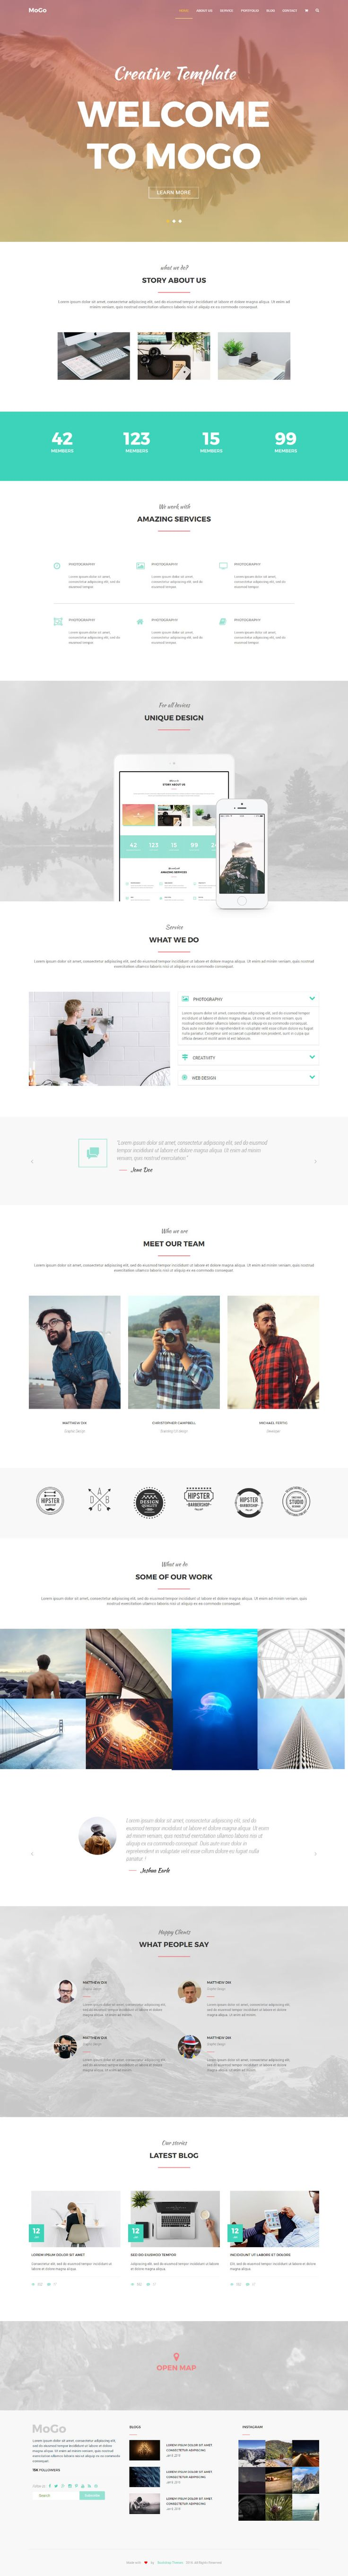 We have created Free Html Template Website. MoGo is a unique, modern single page html template. It's a perfect for any creative studio, corporate websites, photography or for portfolio. You can download the HTML for your next project !   #Free #html #website #template  #responsive #css #css3 #html5